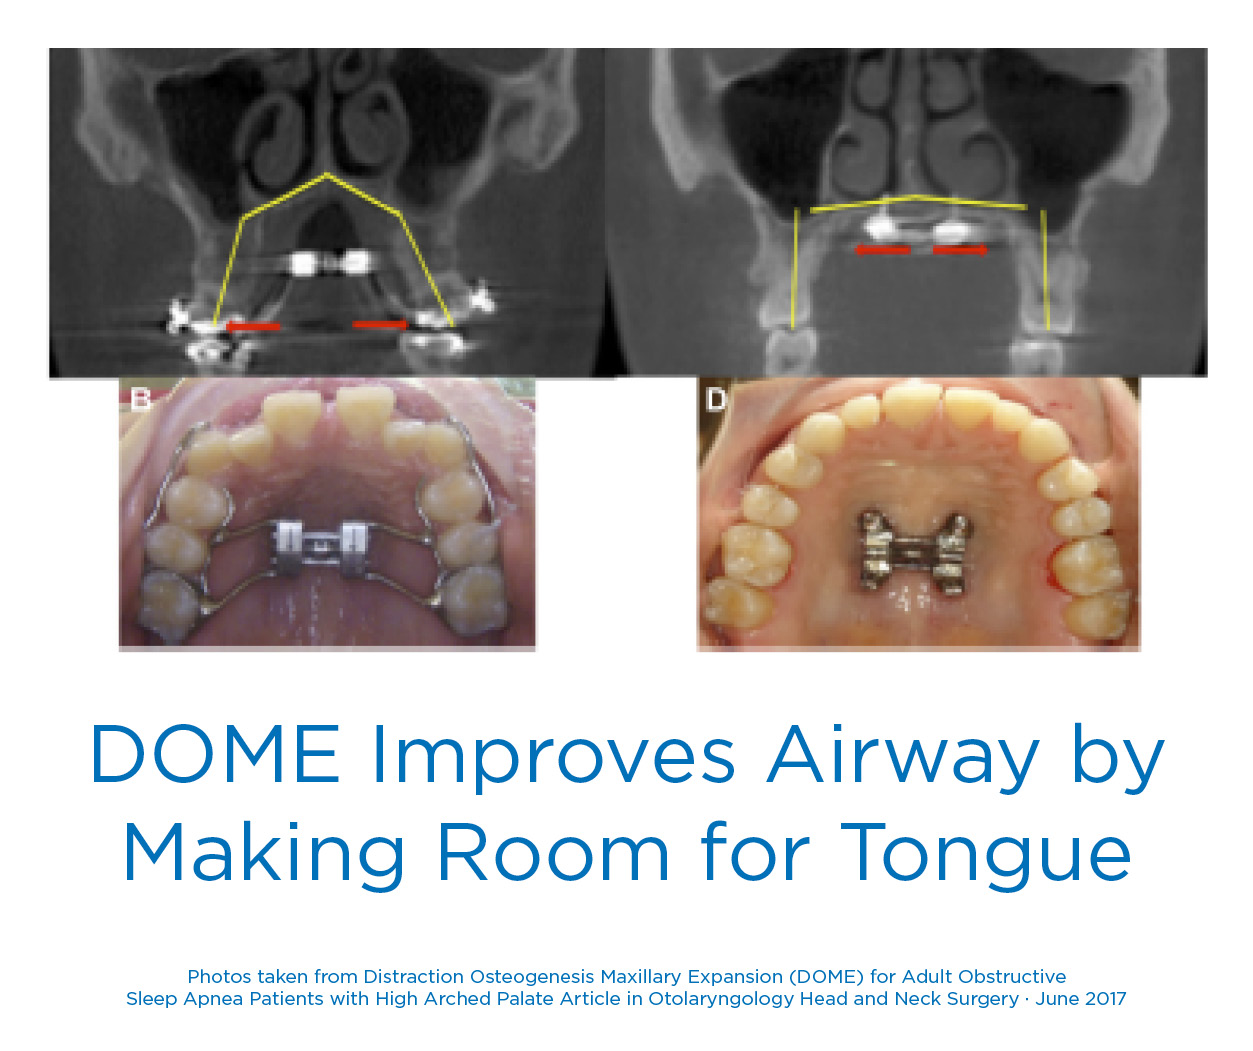 DOME for Sleep Apnea Improves Airway Making Room for Tongue